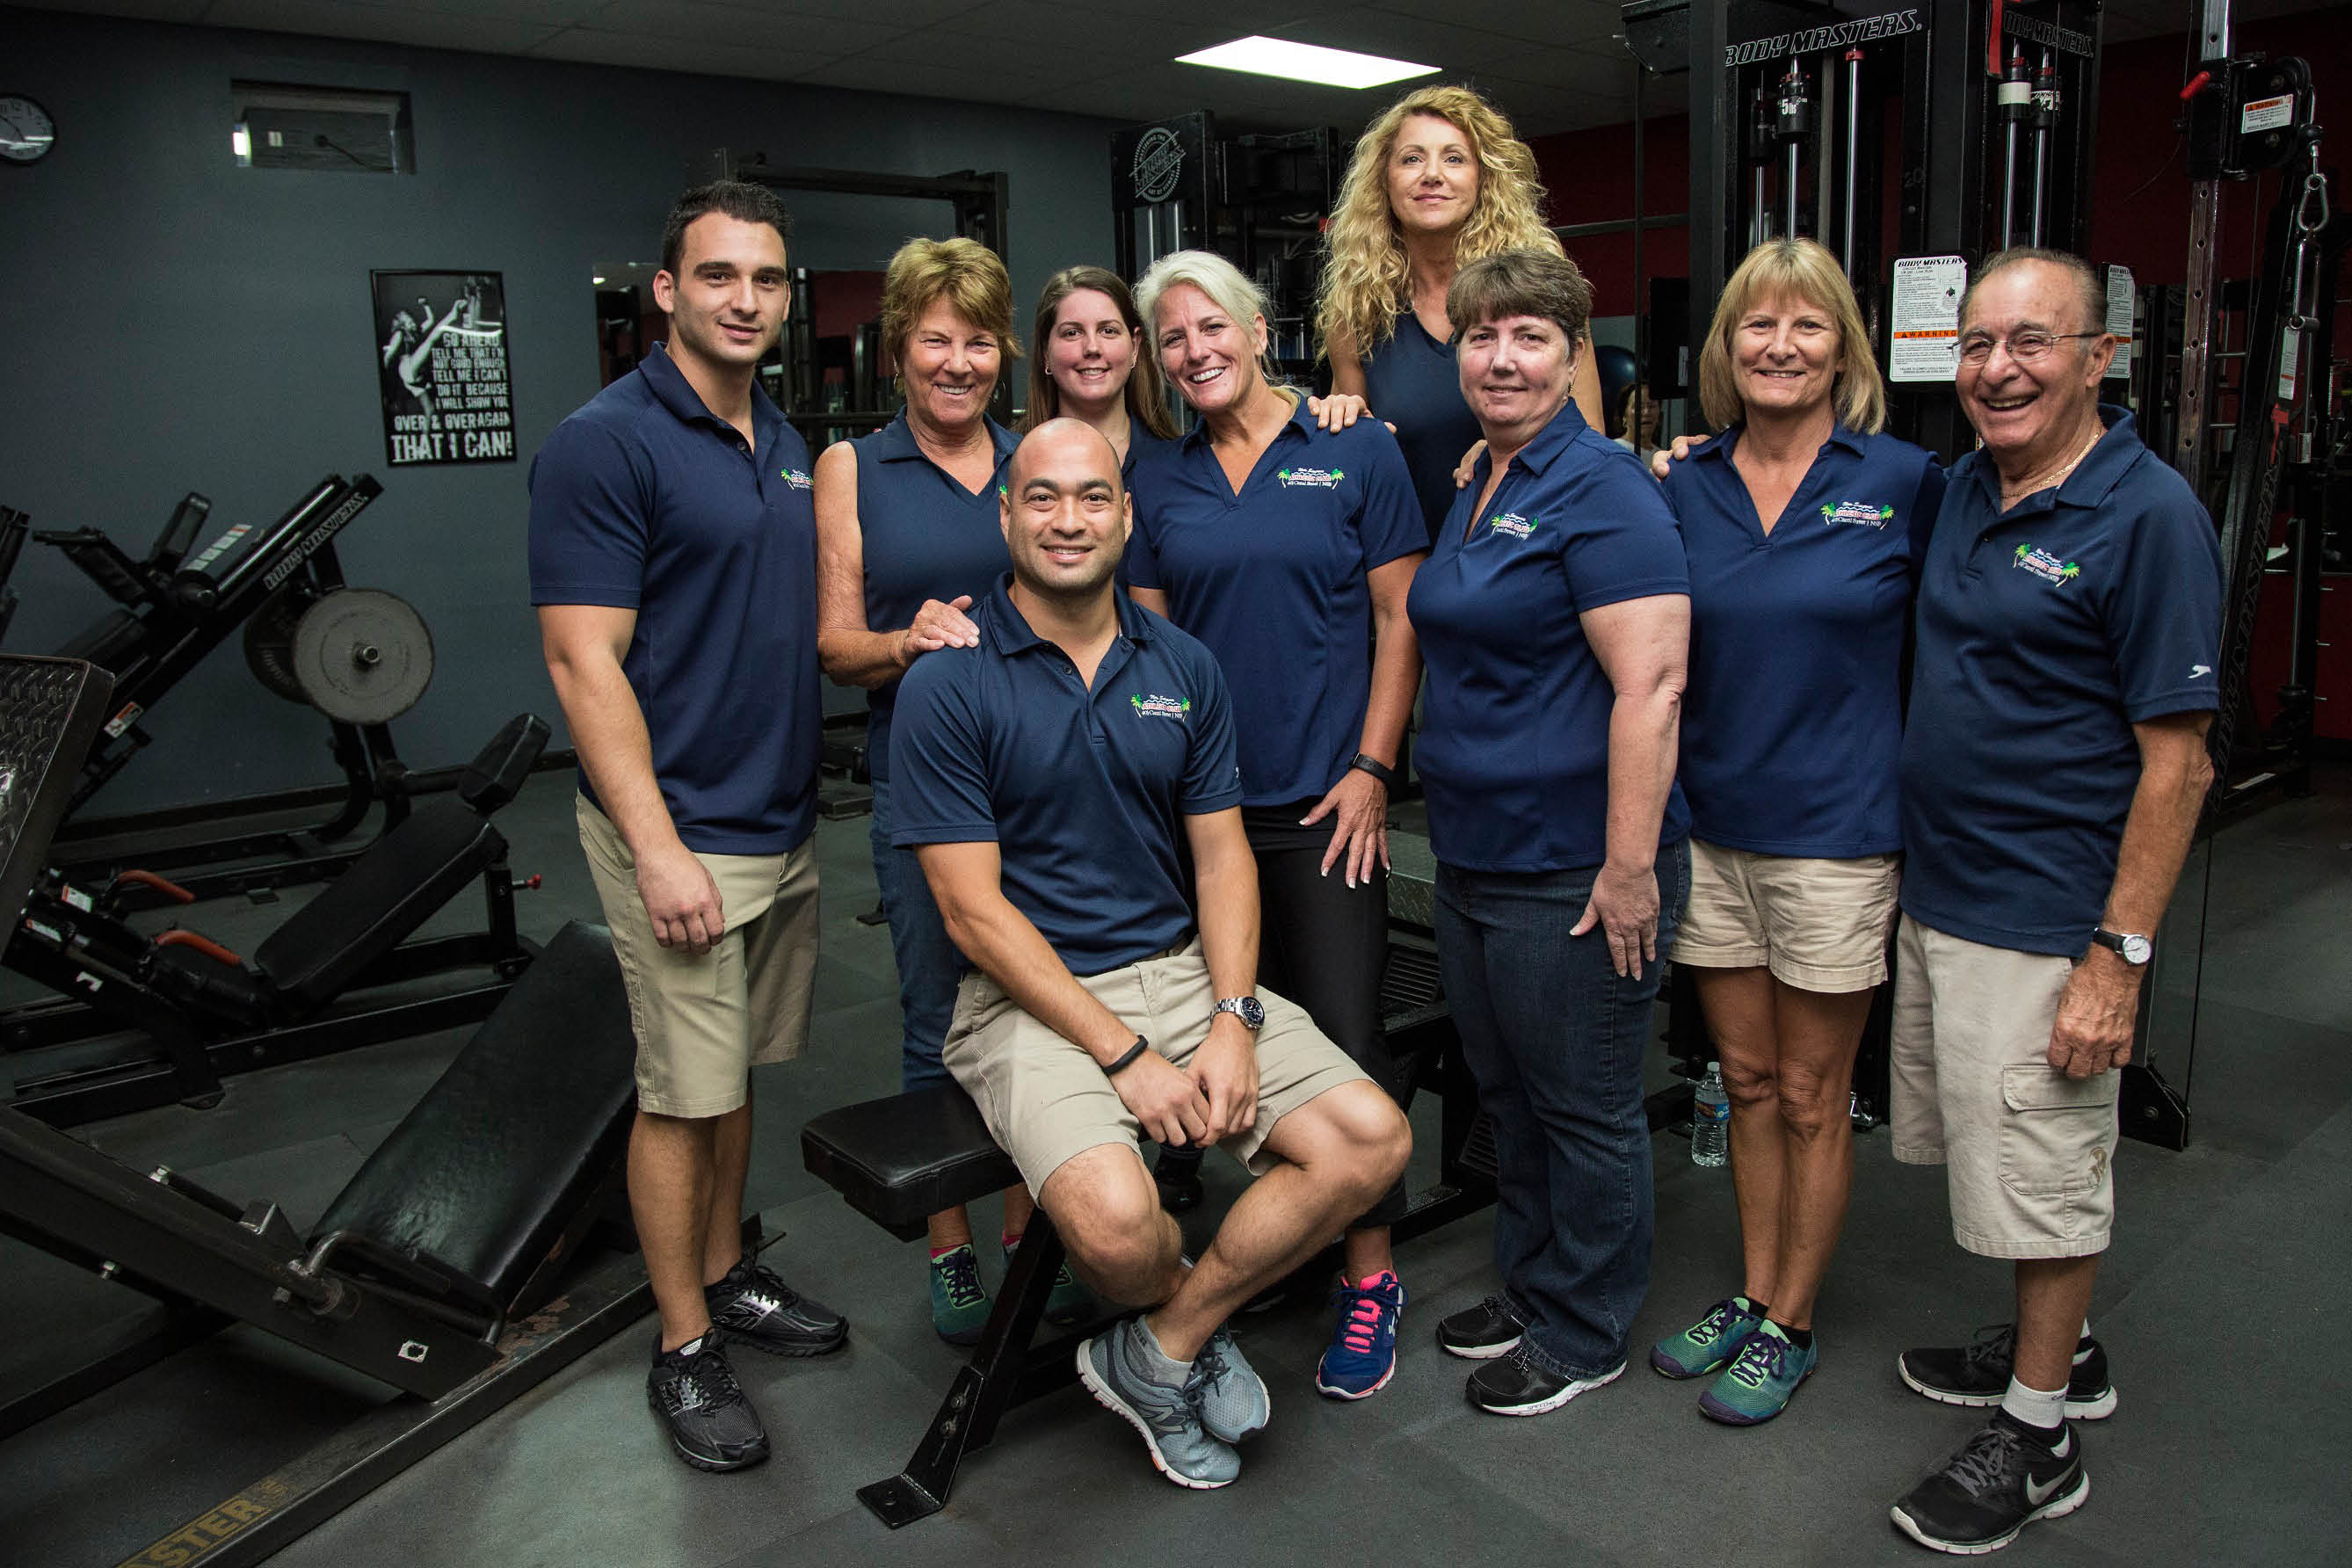 Personal trainer near New Smyrna